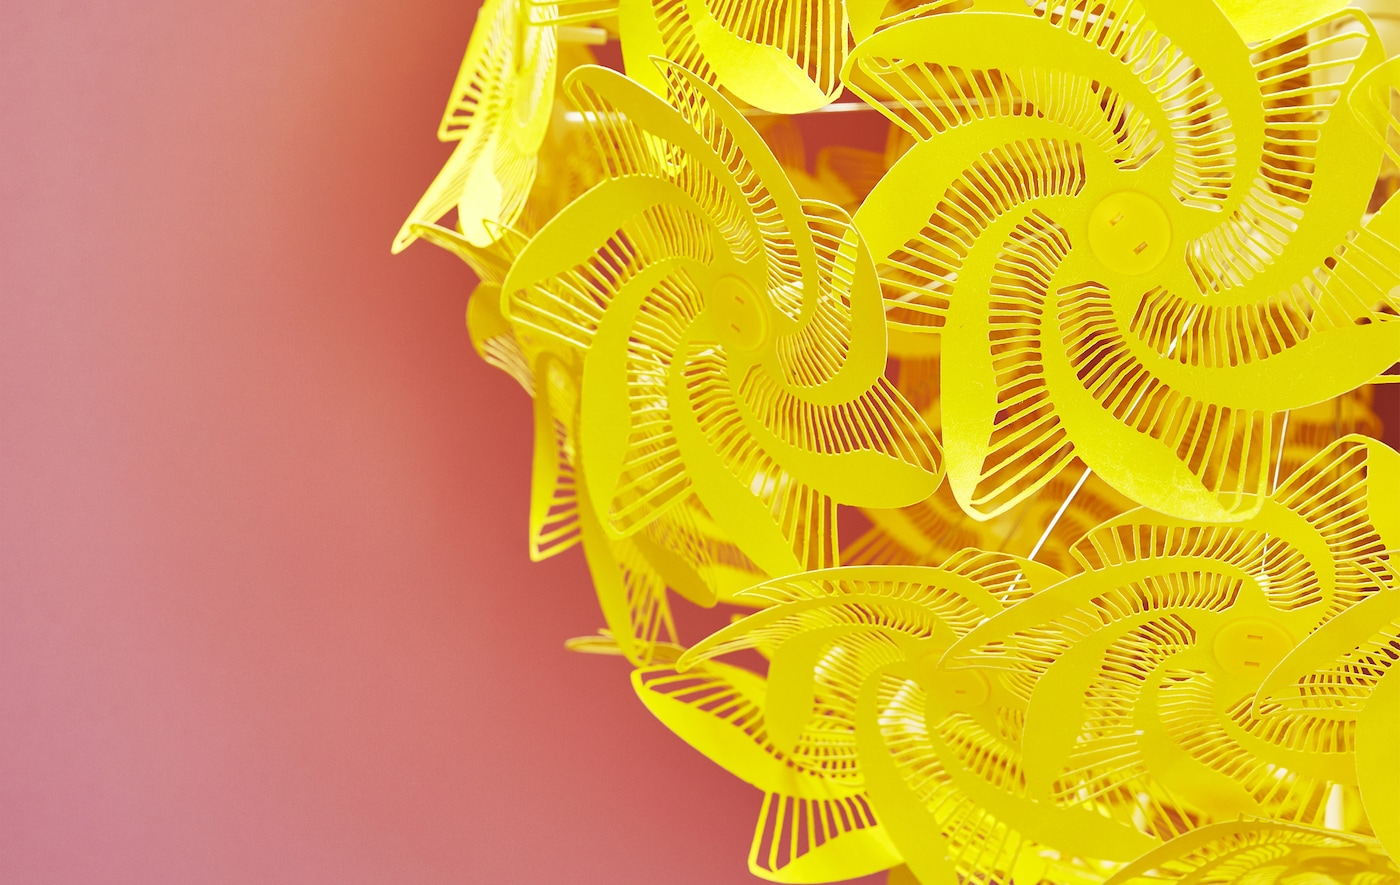 A close-up of a lamp with yellow cut-out shapes on a red background.